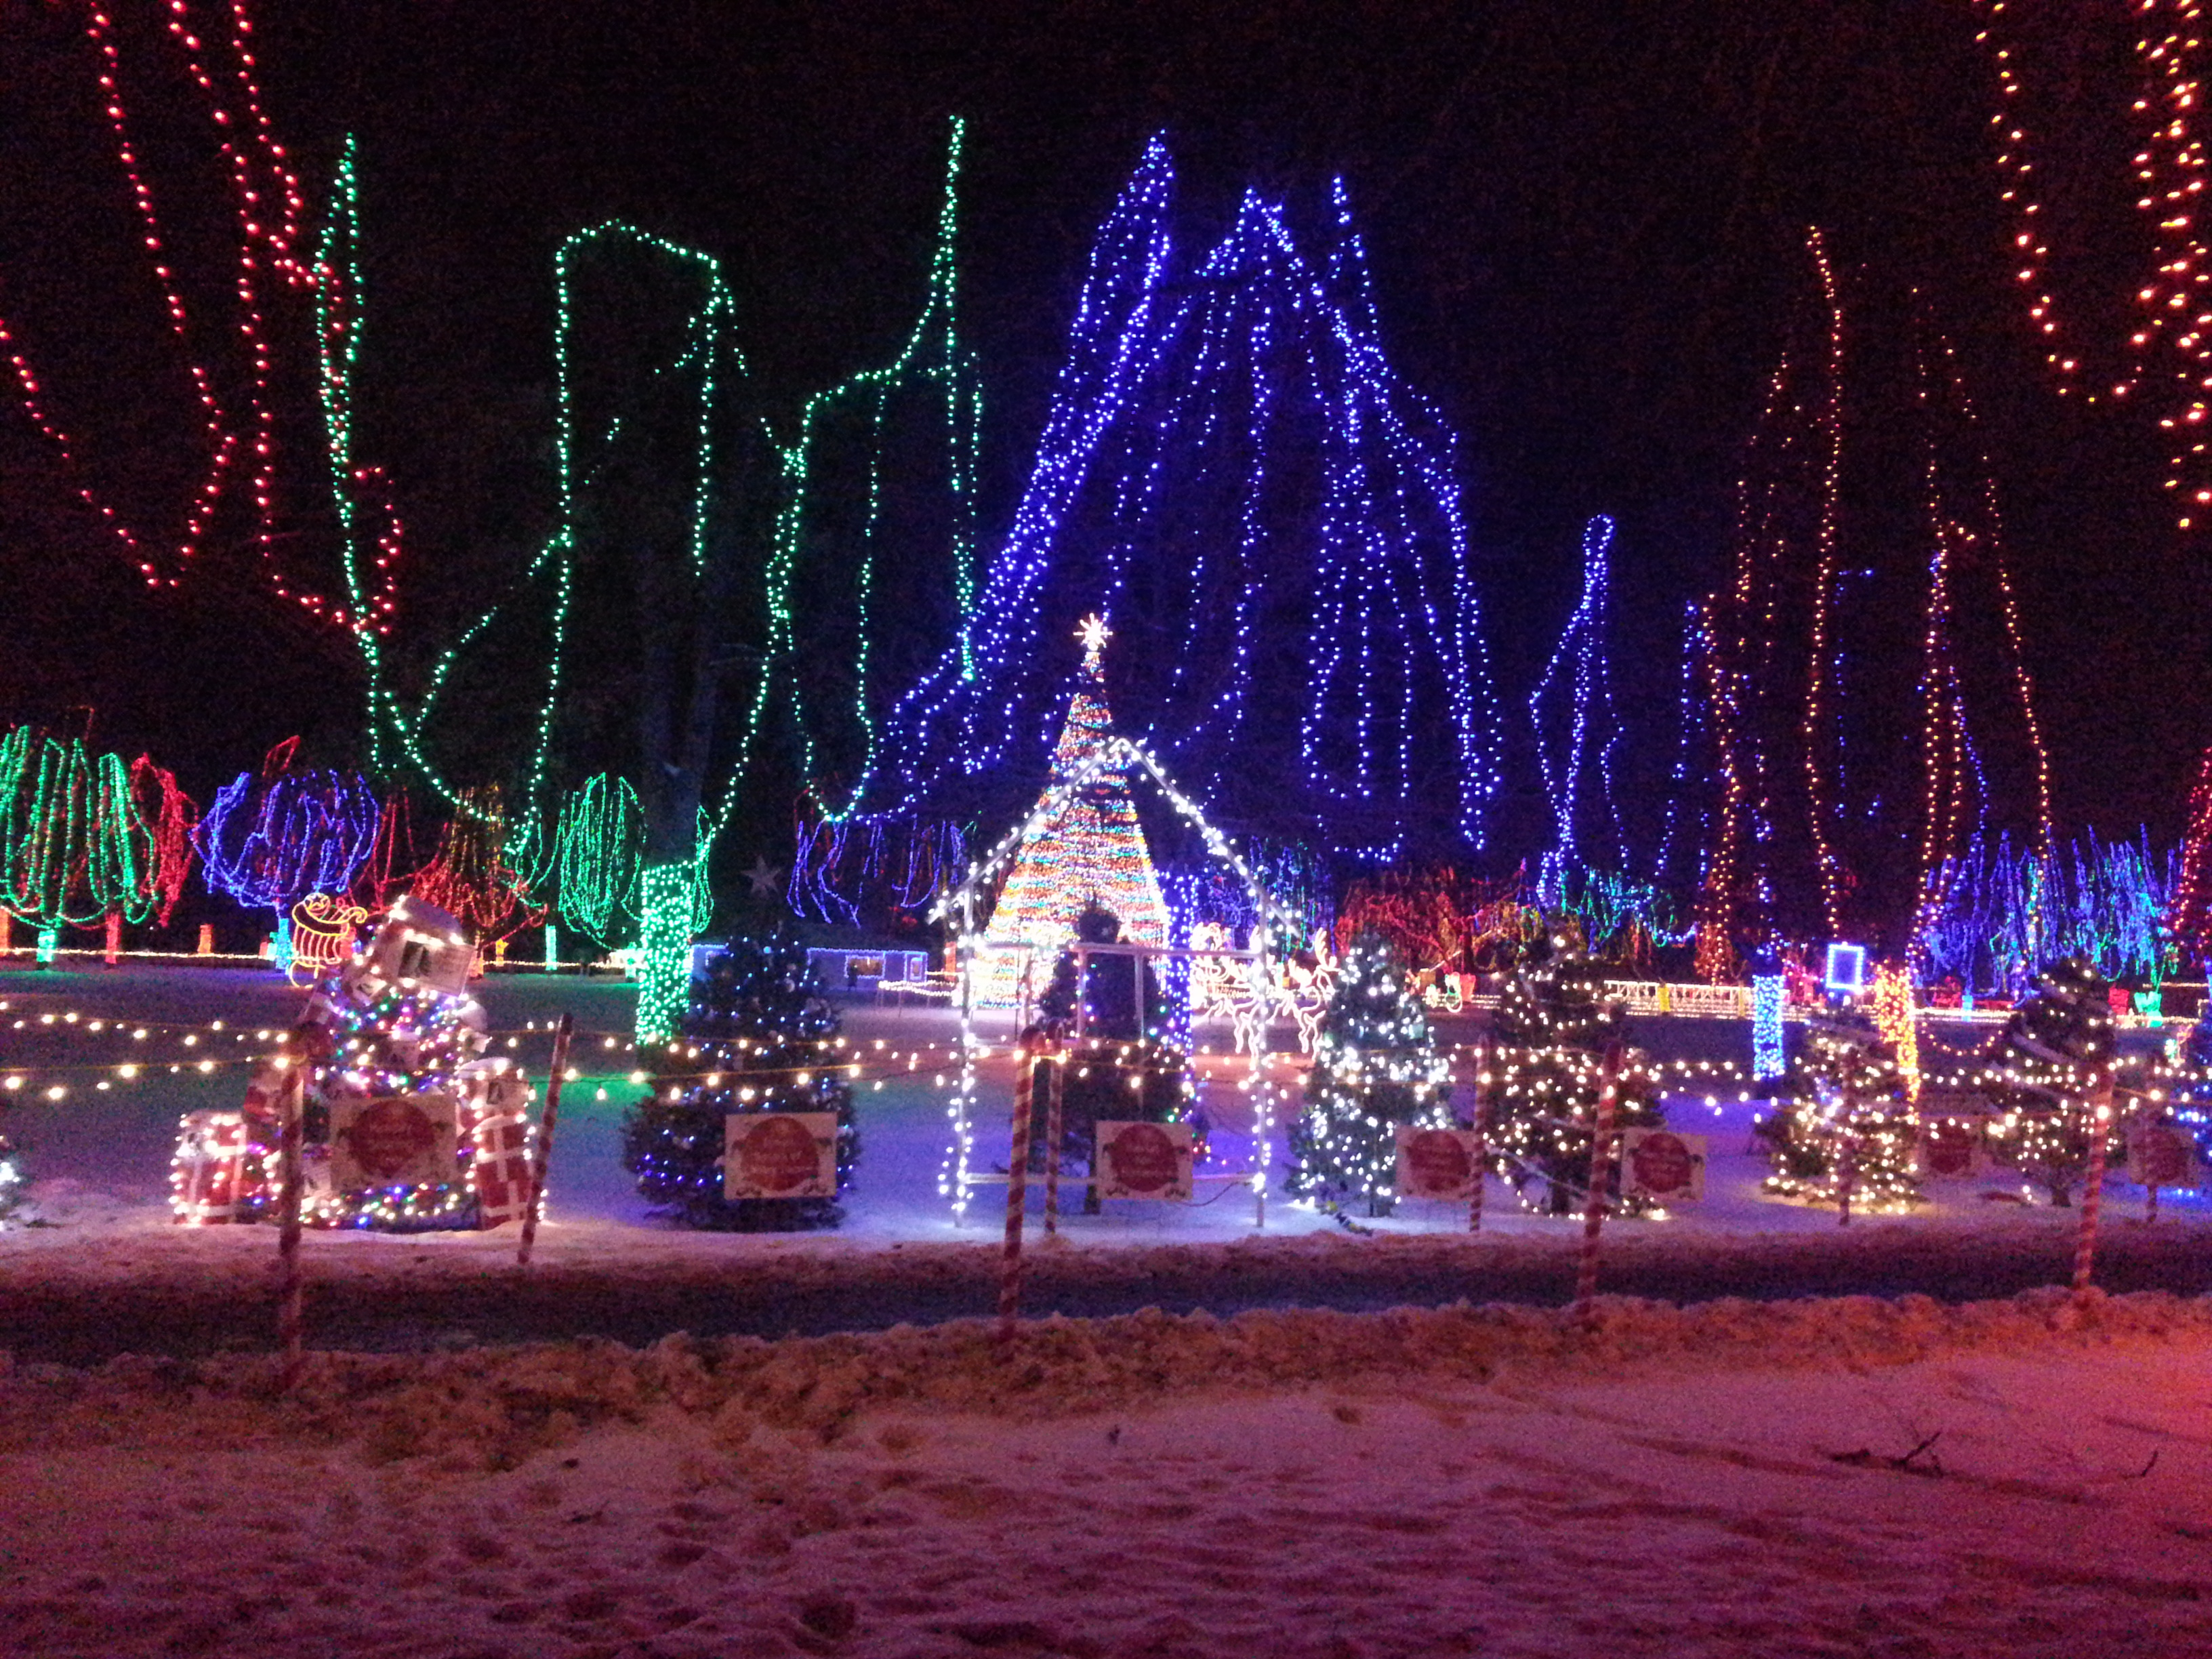 Amazing Christmas Holiday Light Display in Mankato, MN – Chris Teien